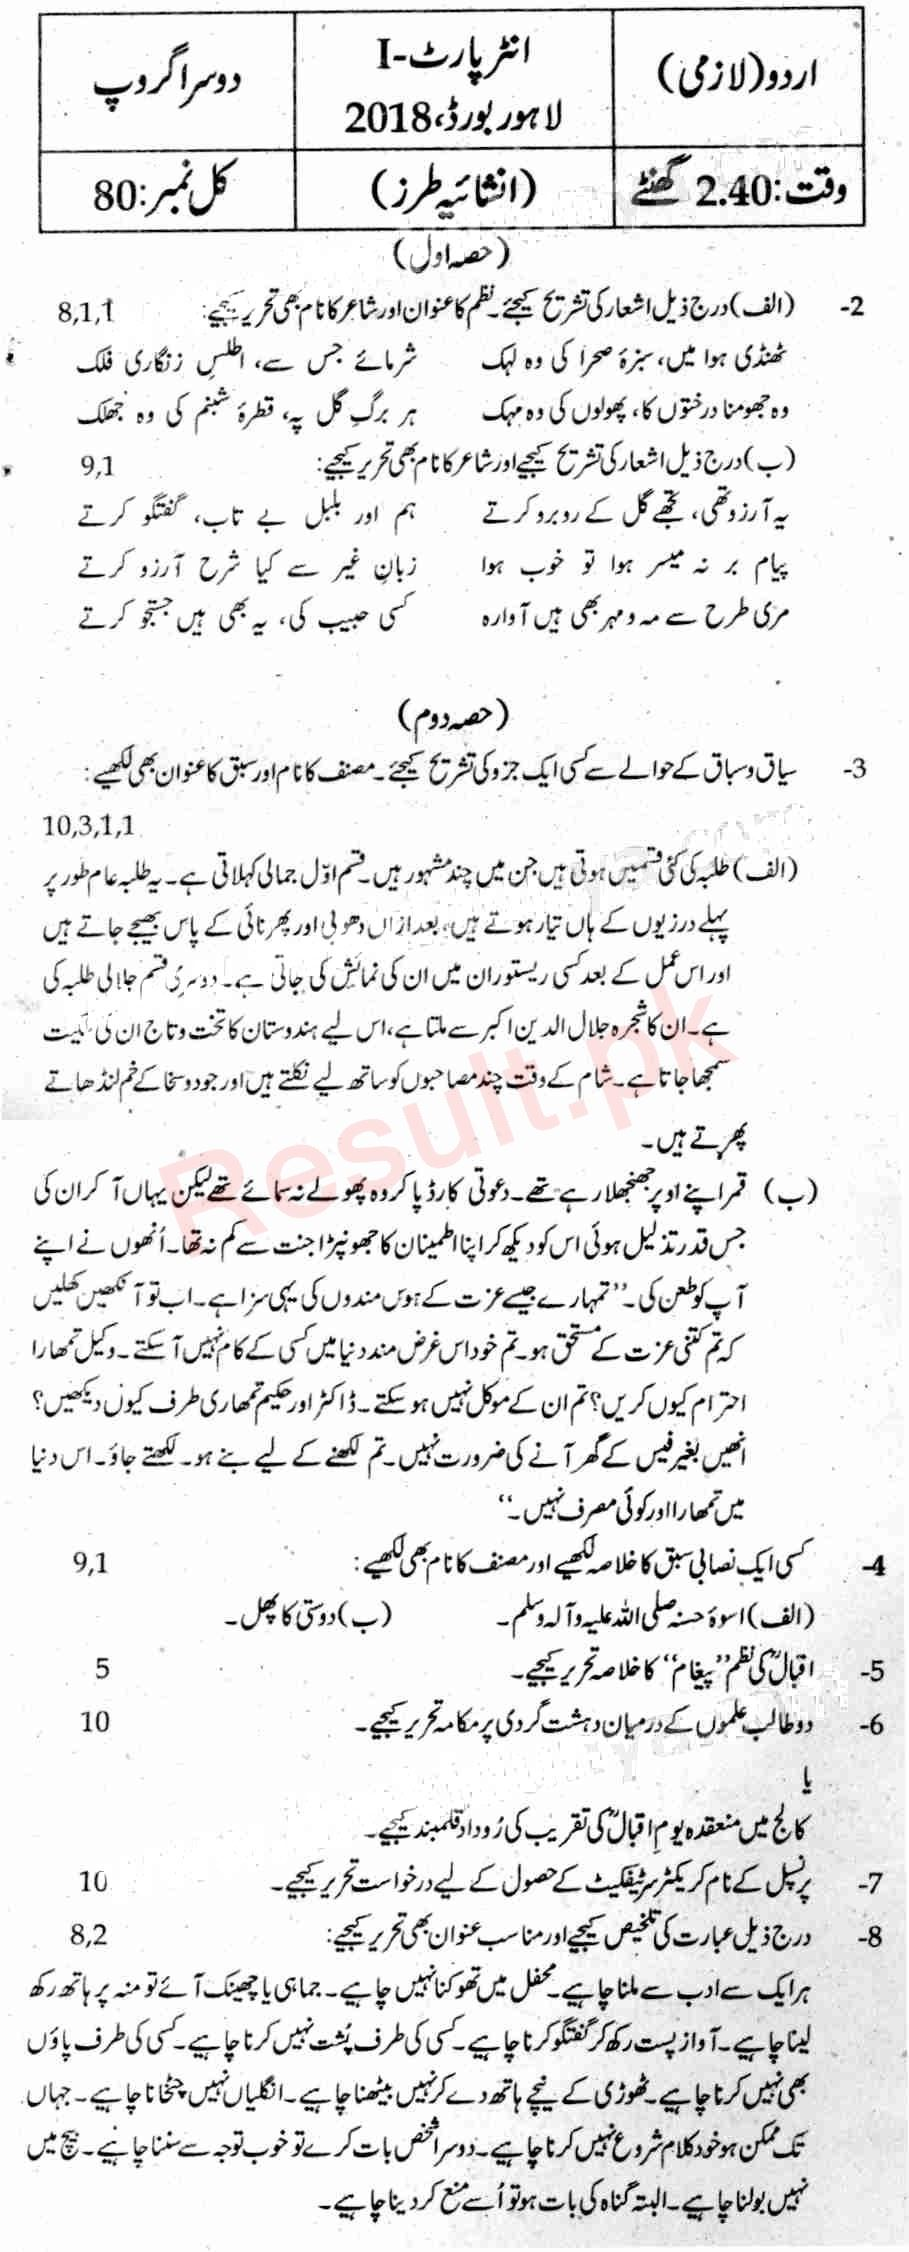 BISE Lahore Board Past Papers 2019 Inter Part 1 2, FA